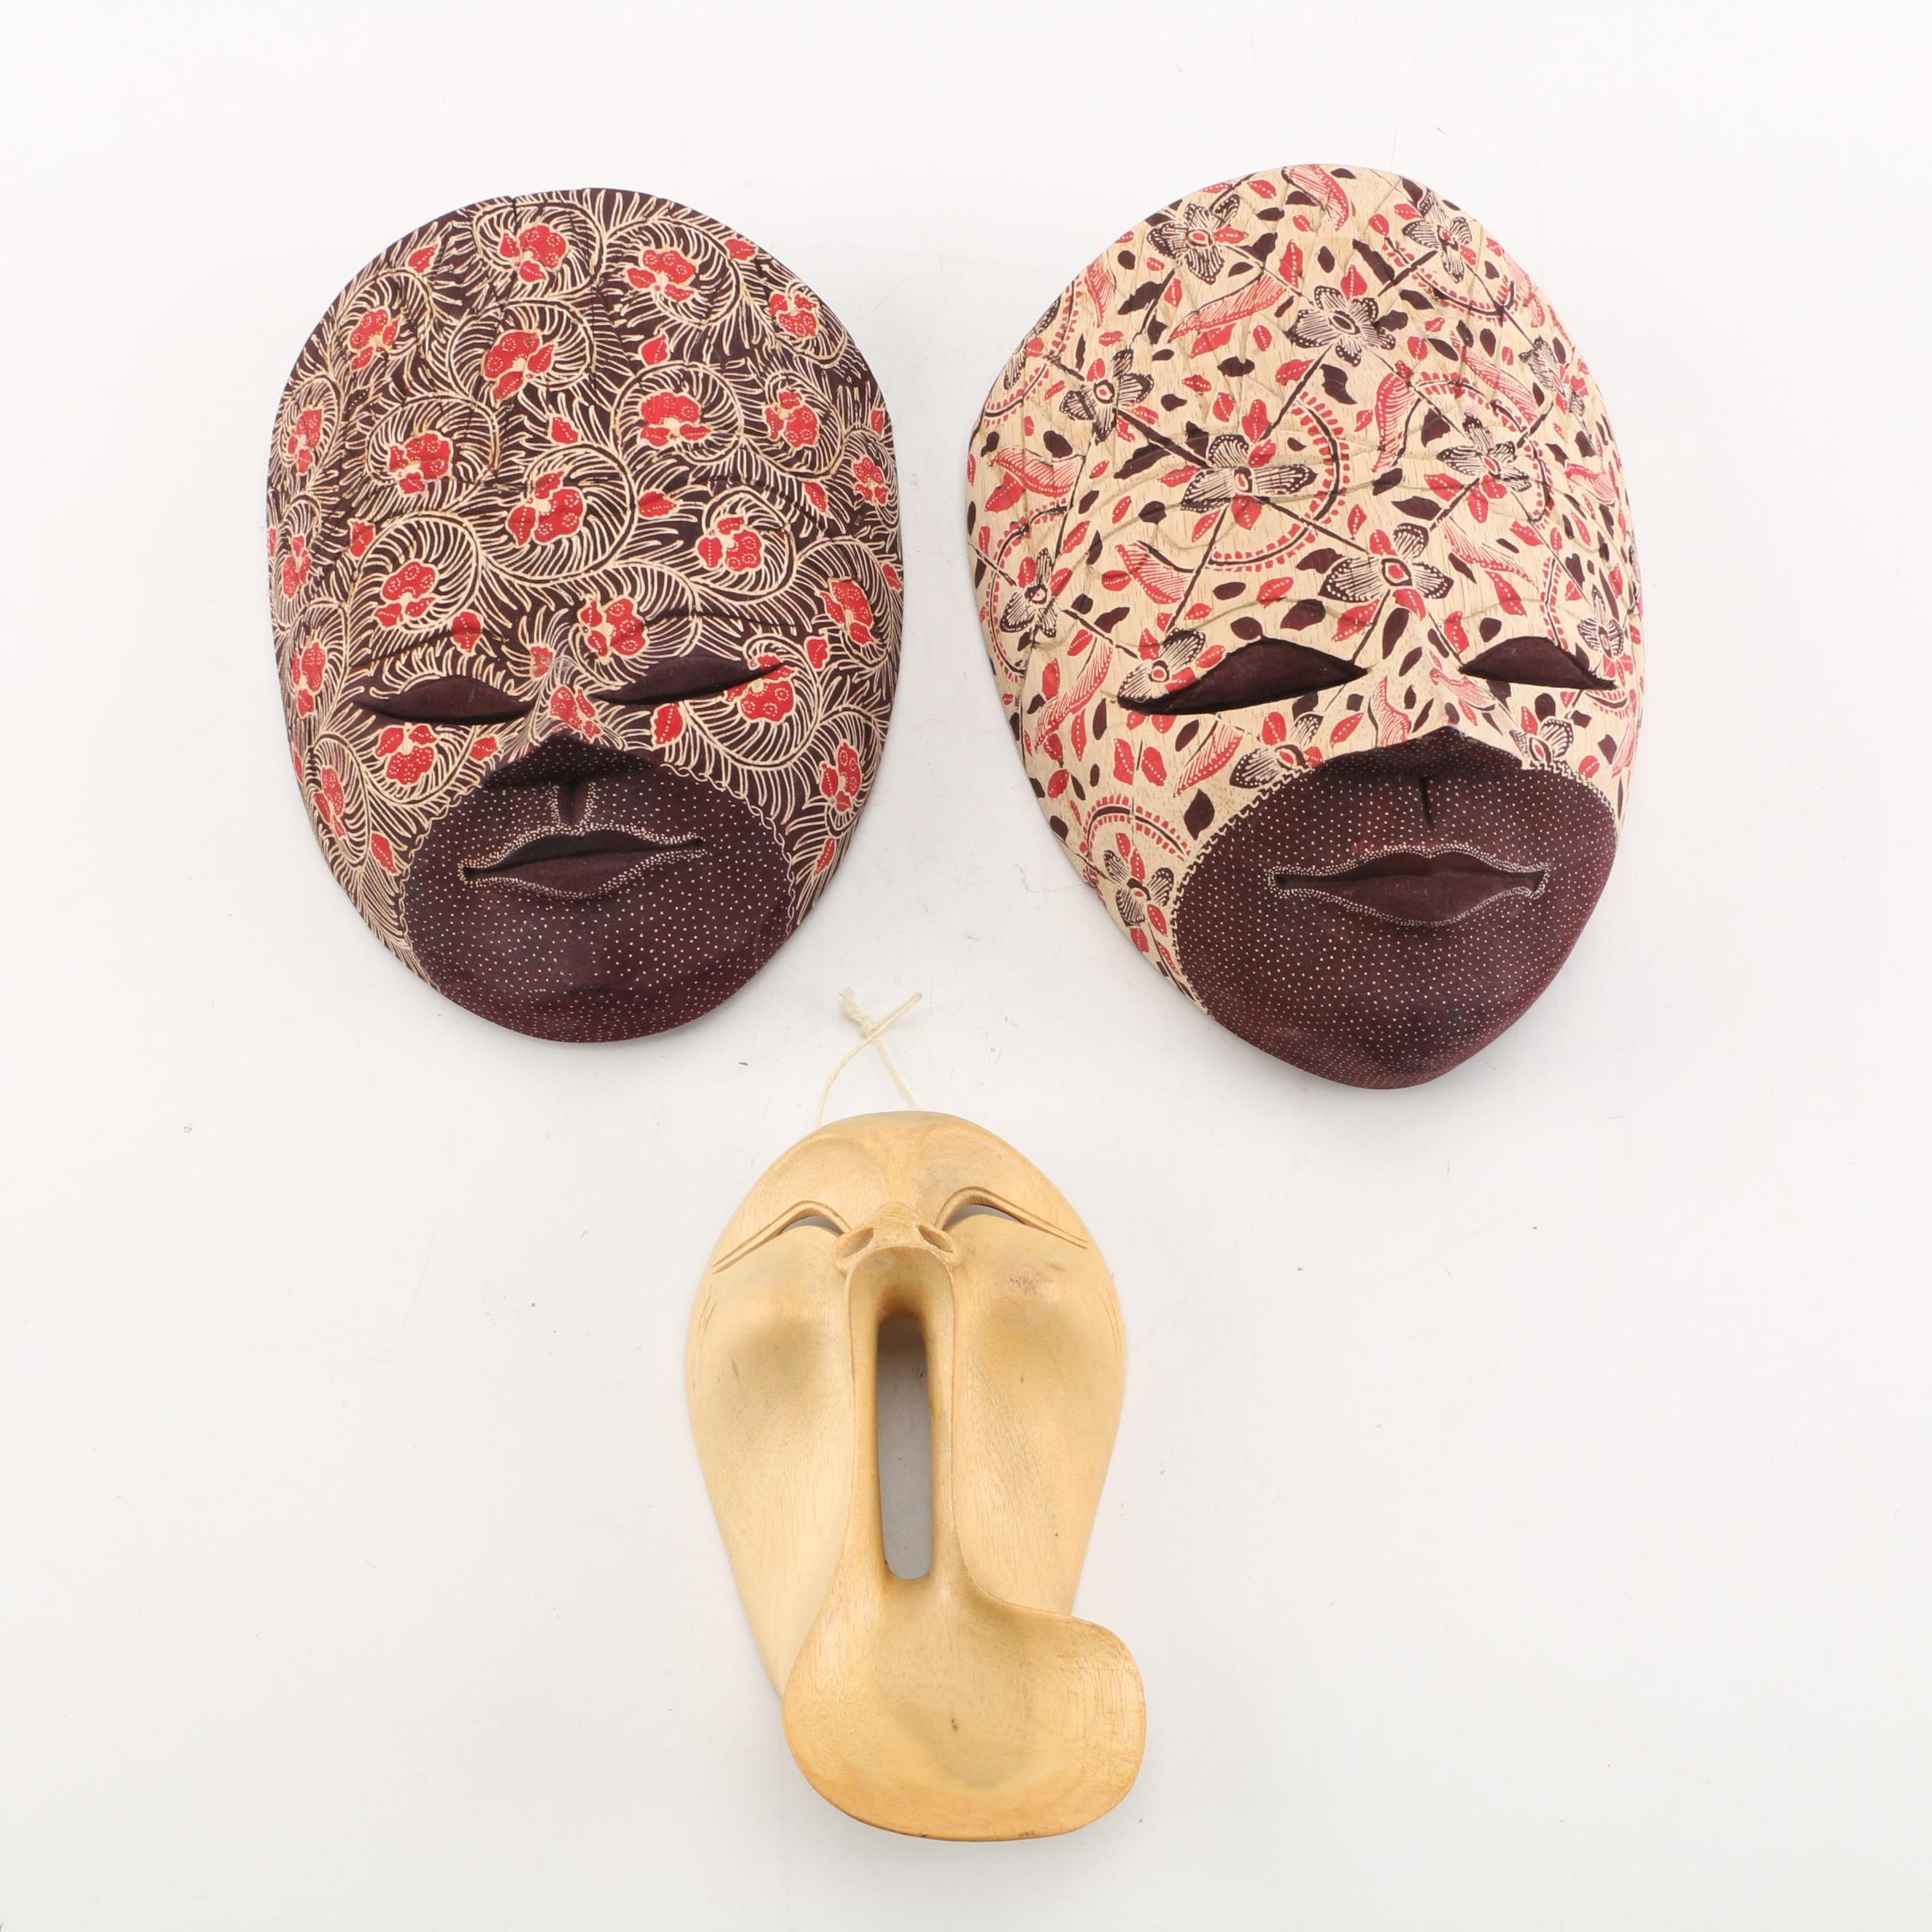 Indonesian Hand-Painted Carved Wood Masks